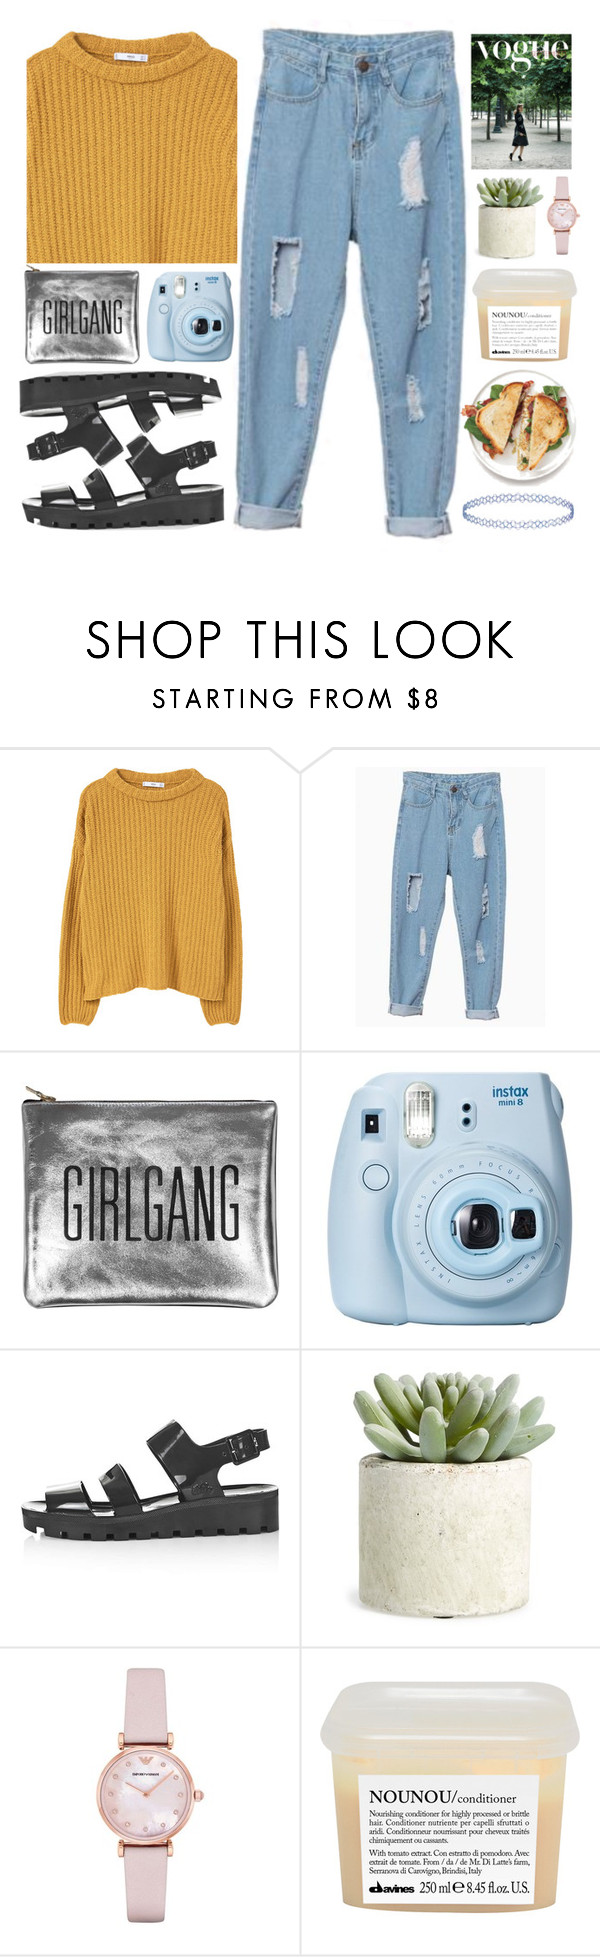 """#496 Egress"" by mia5056 ❤ liked on Polyvore featuring MANGO, Sarah Baily, Fujifilm, Topshop, Allstate Floral, Emporio Armani and Davines"